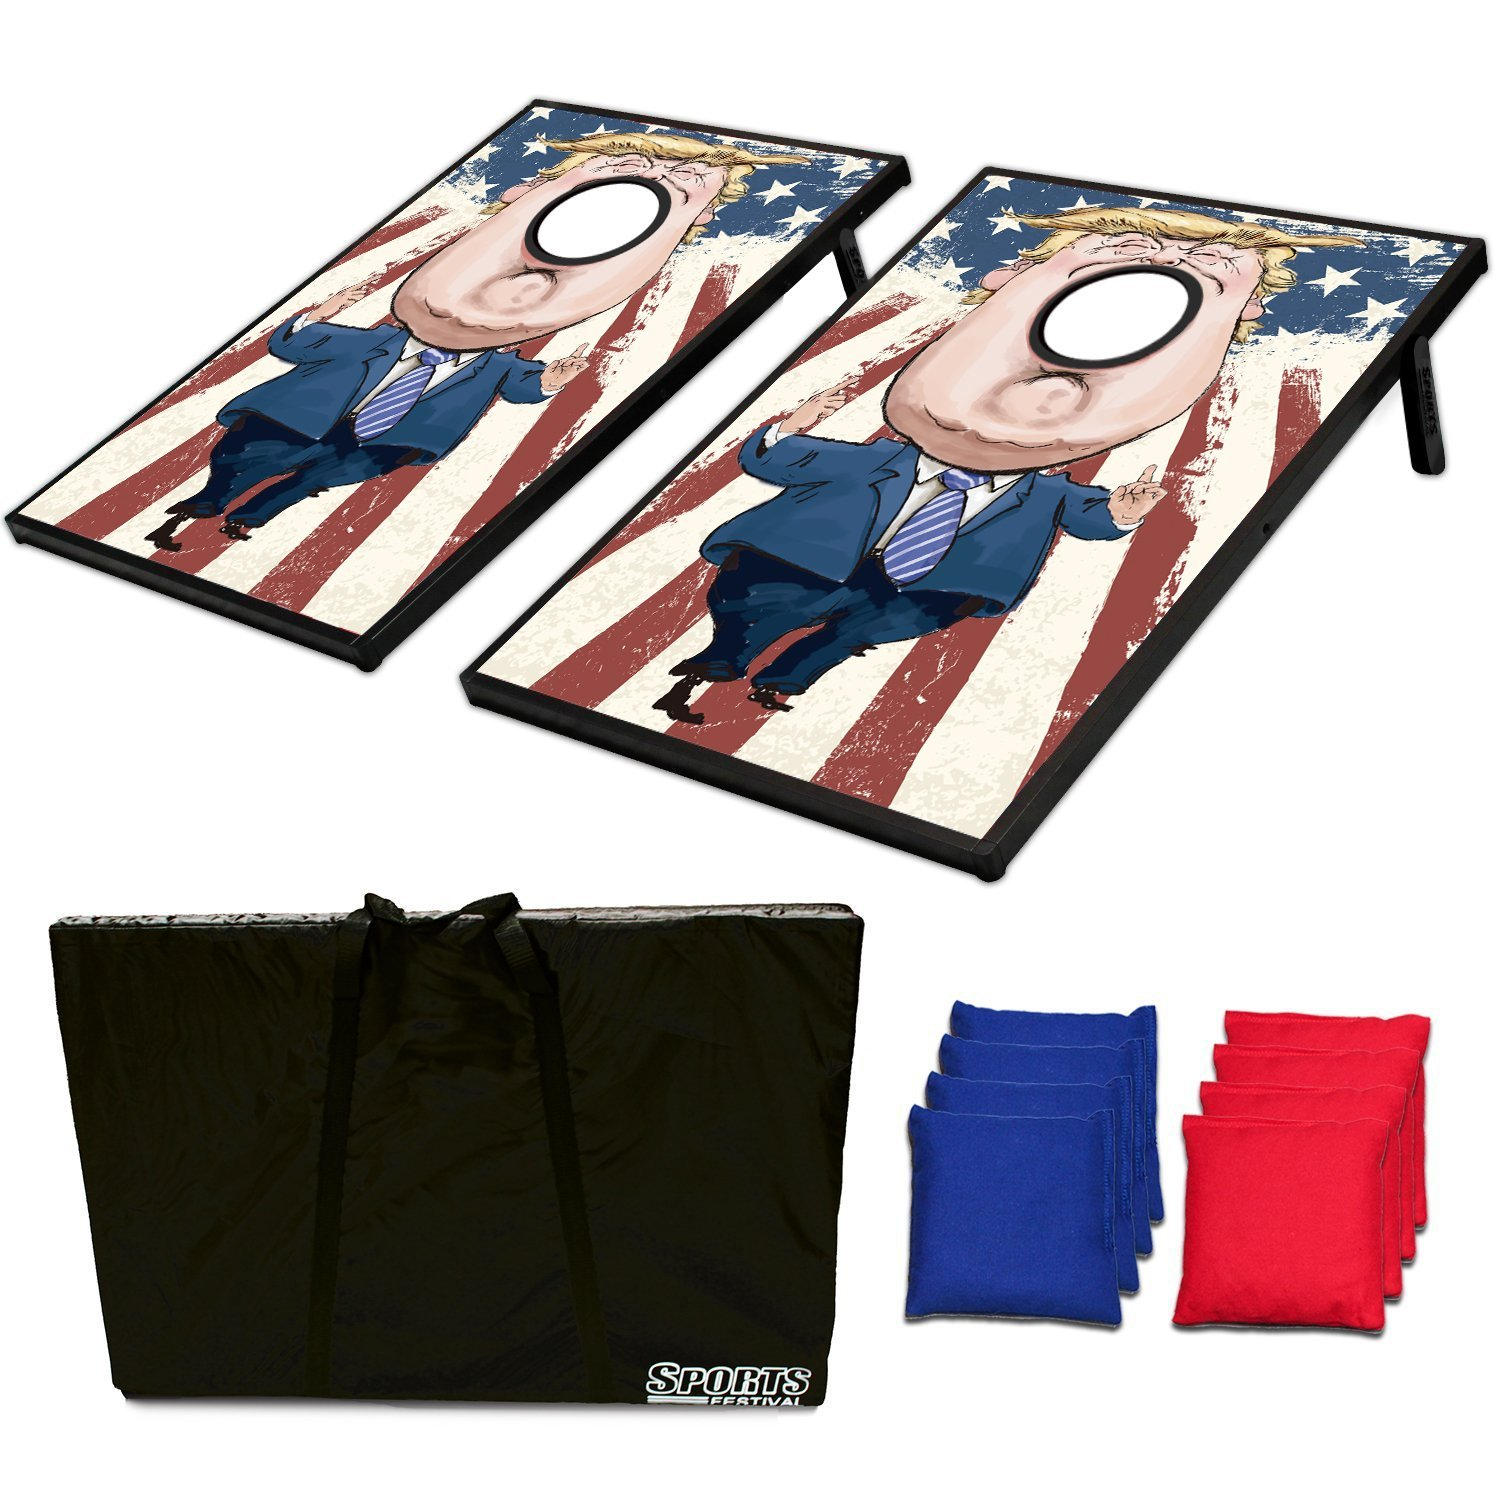 Cornhole Beanbag Toss Game and Tic Tac Toe Donald Trump by Zhejiang Phelps Lighting Technology Co., Ltd.